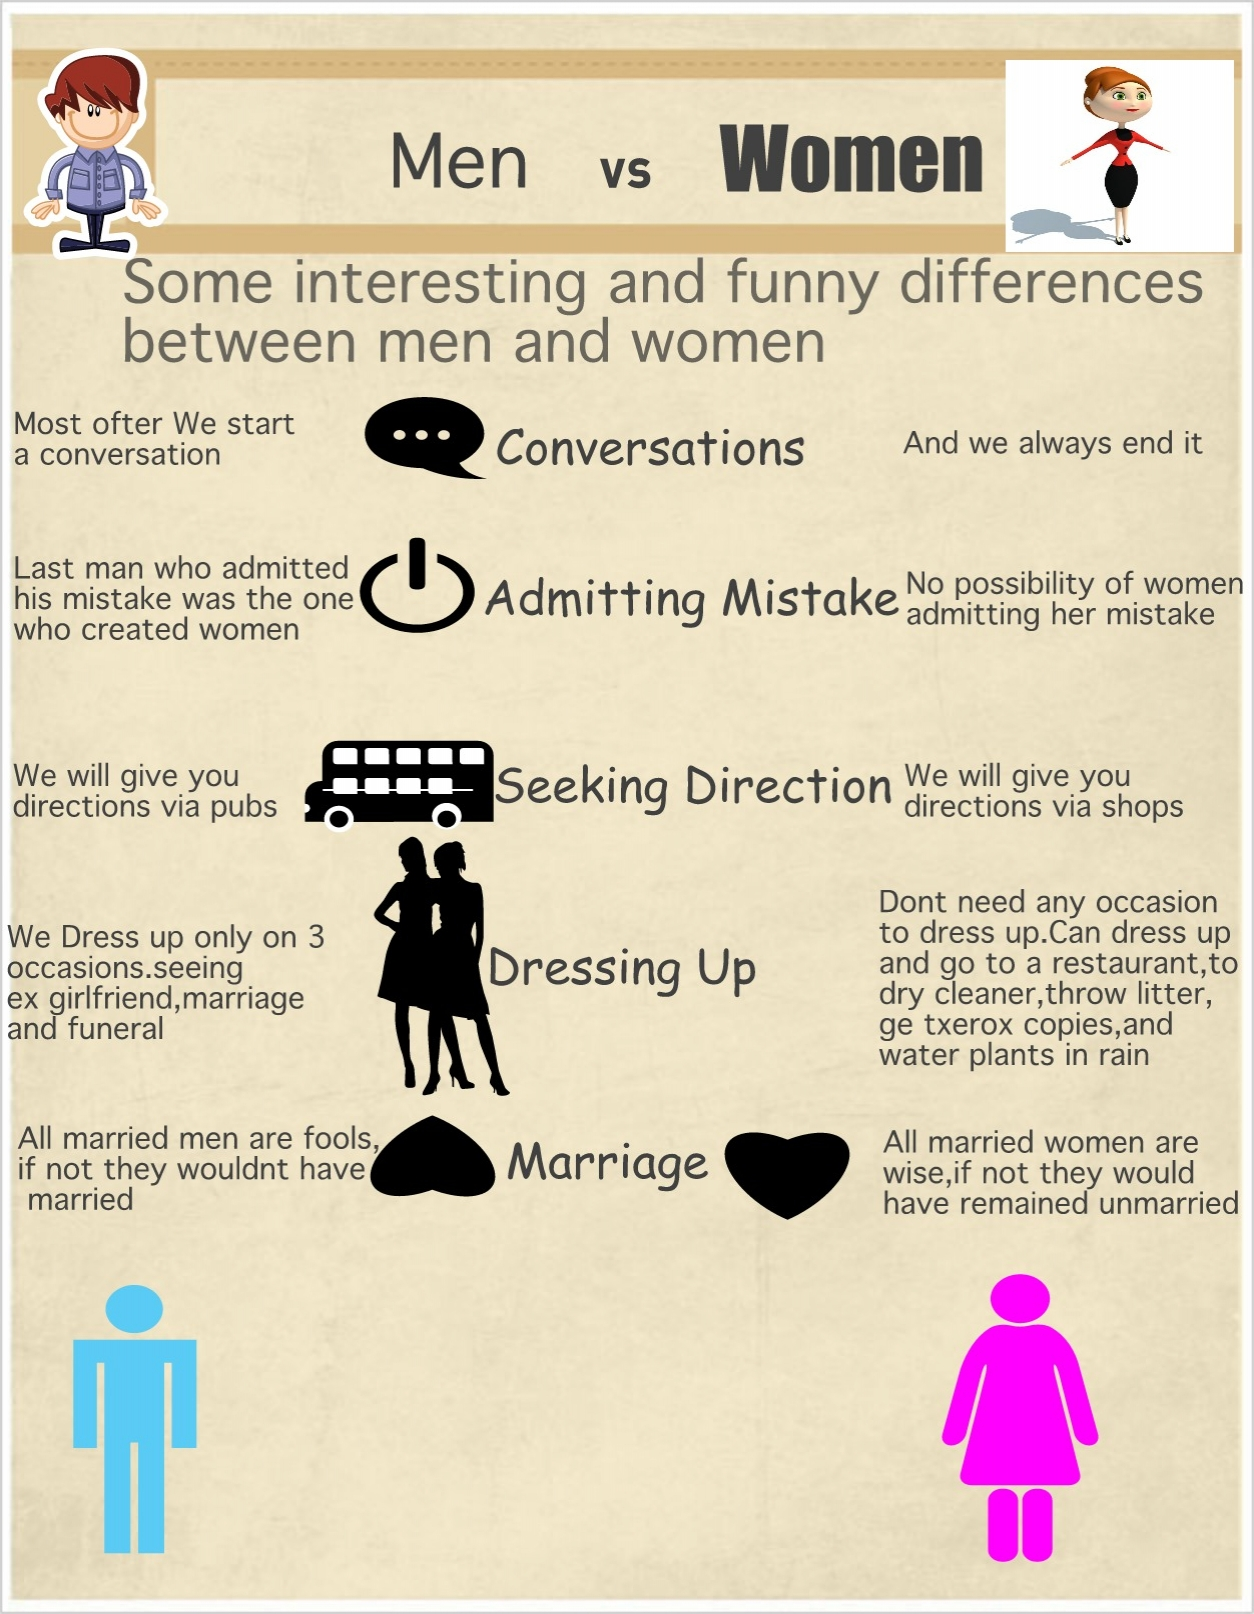 Men and women information seeking differences